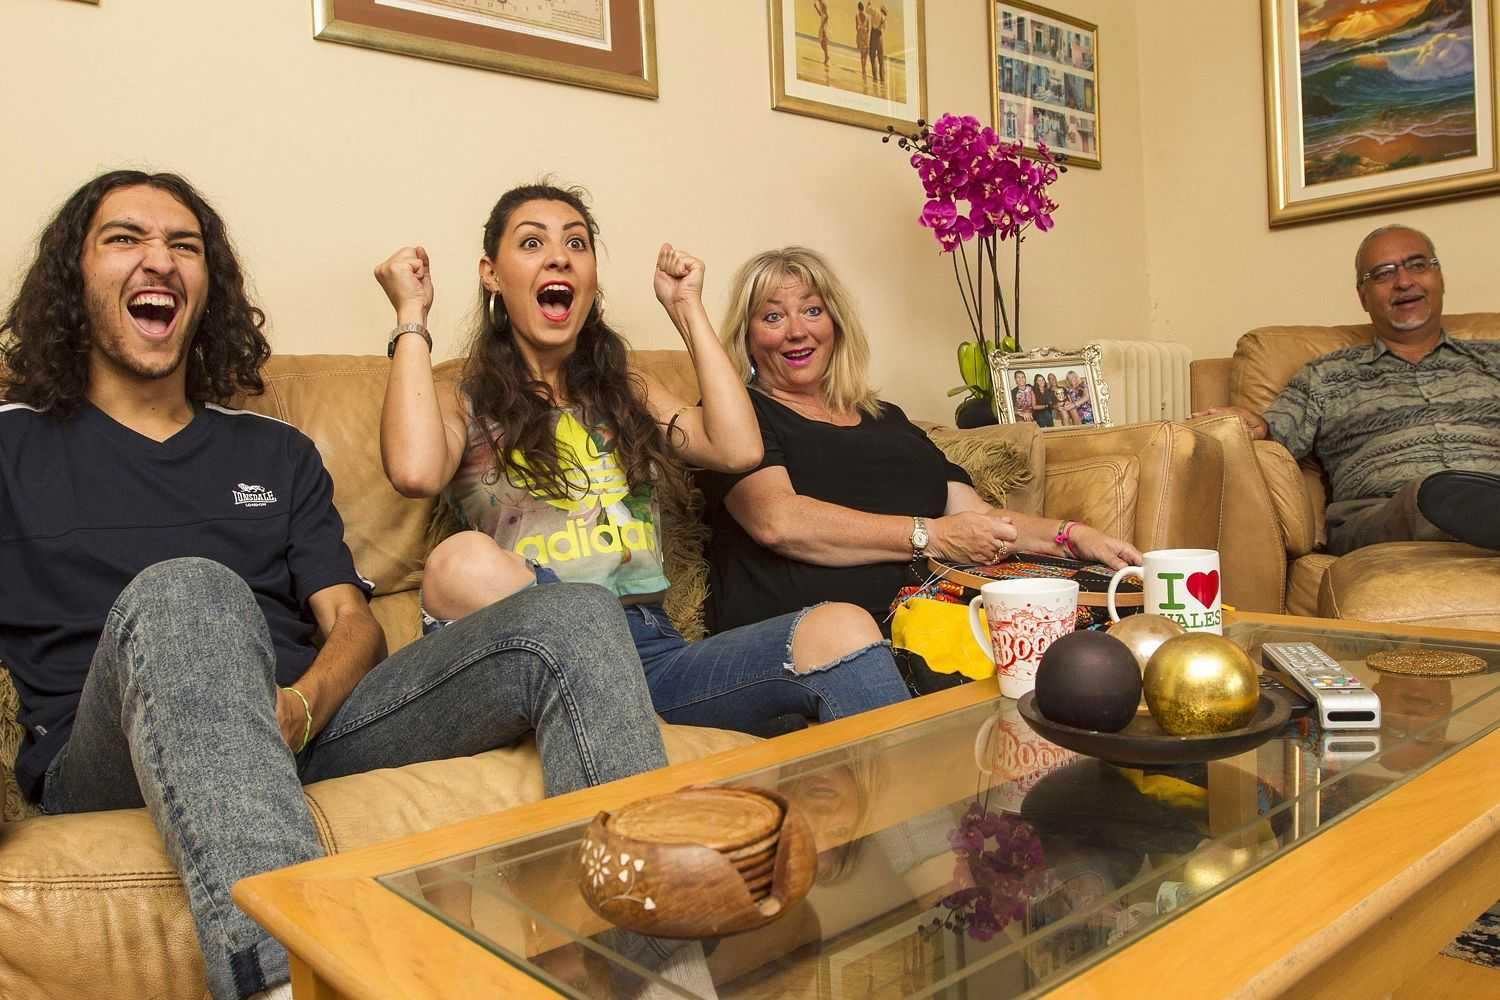 The Gogglebox family members they tried to hide!